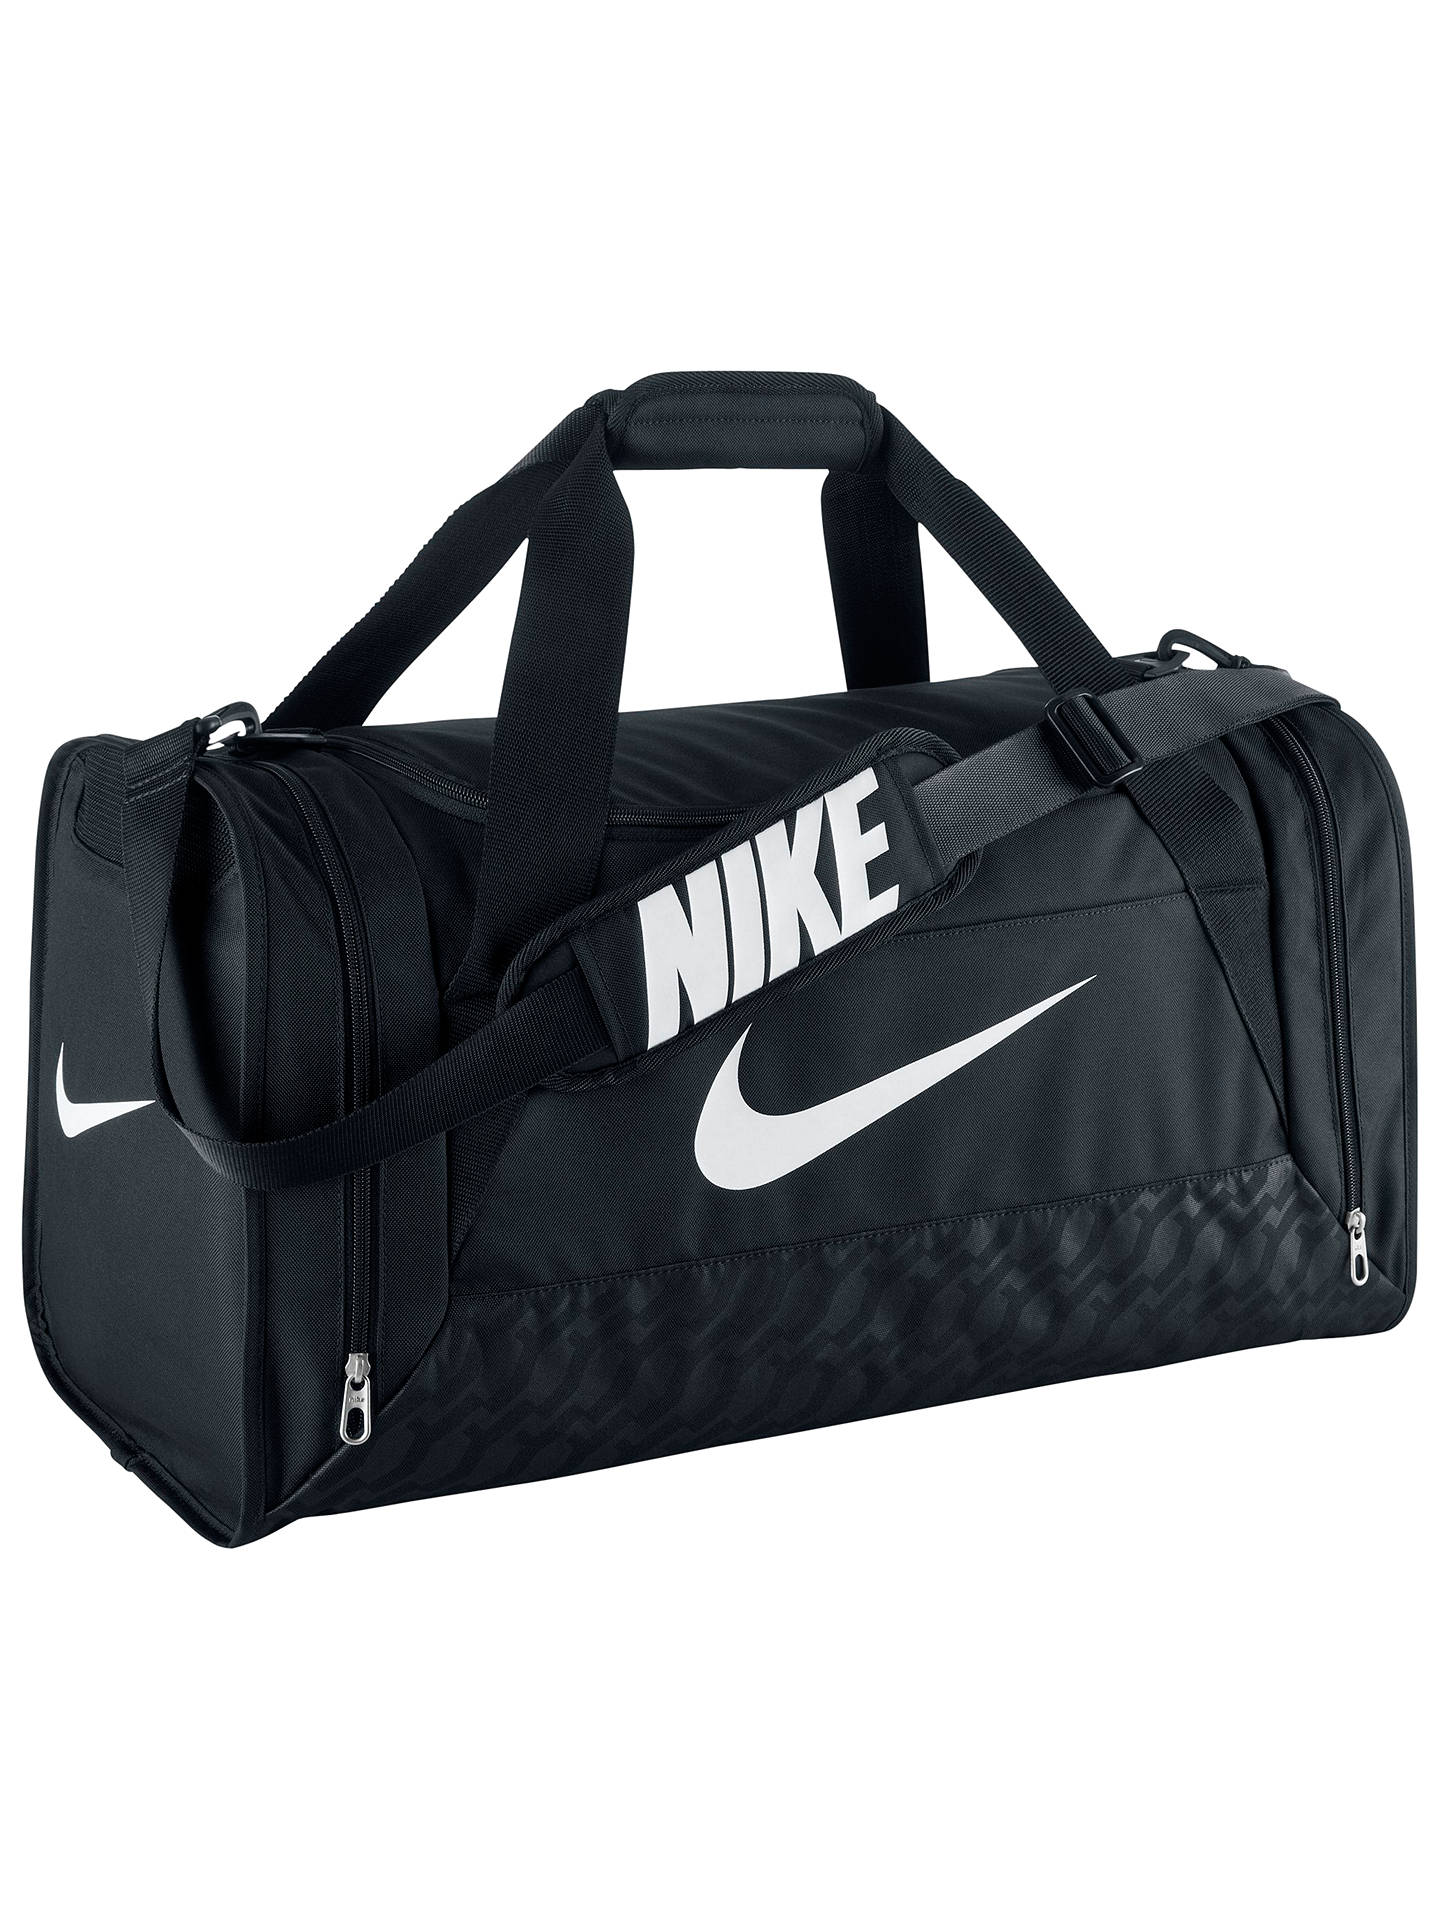 Nike Victory Gym Tote Brand new with tags. Water-resistant ... |Nike Dry Bag